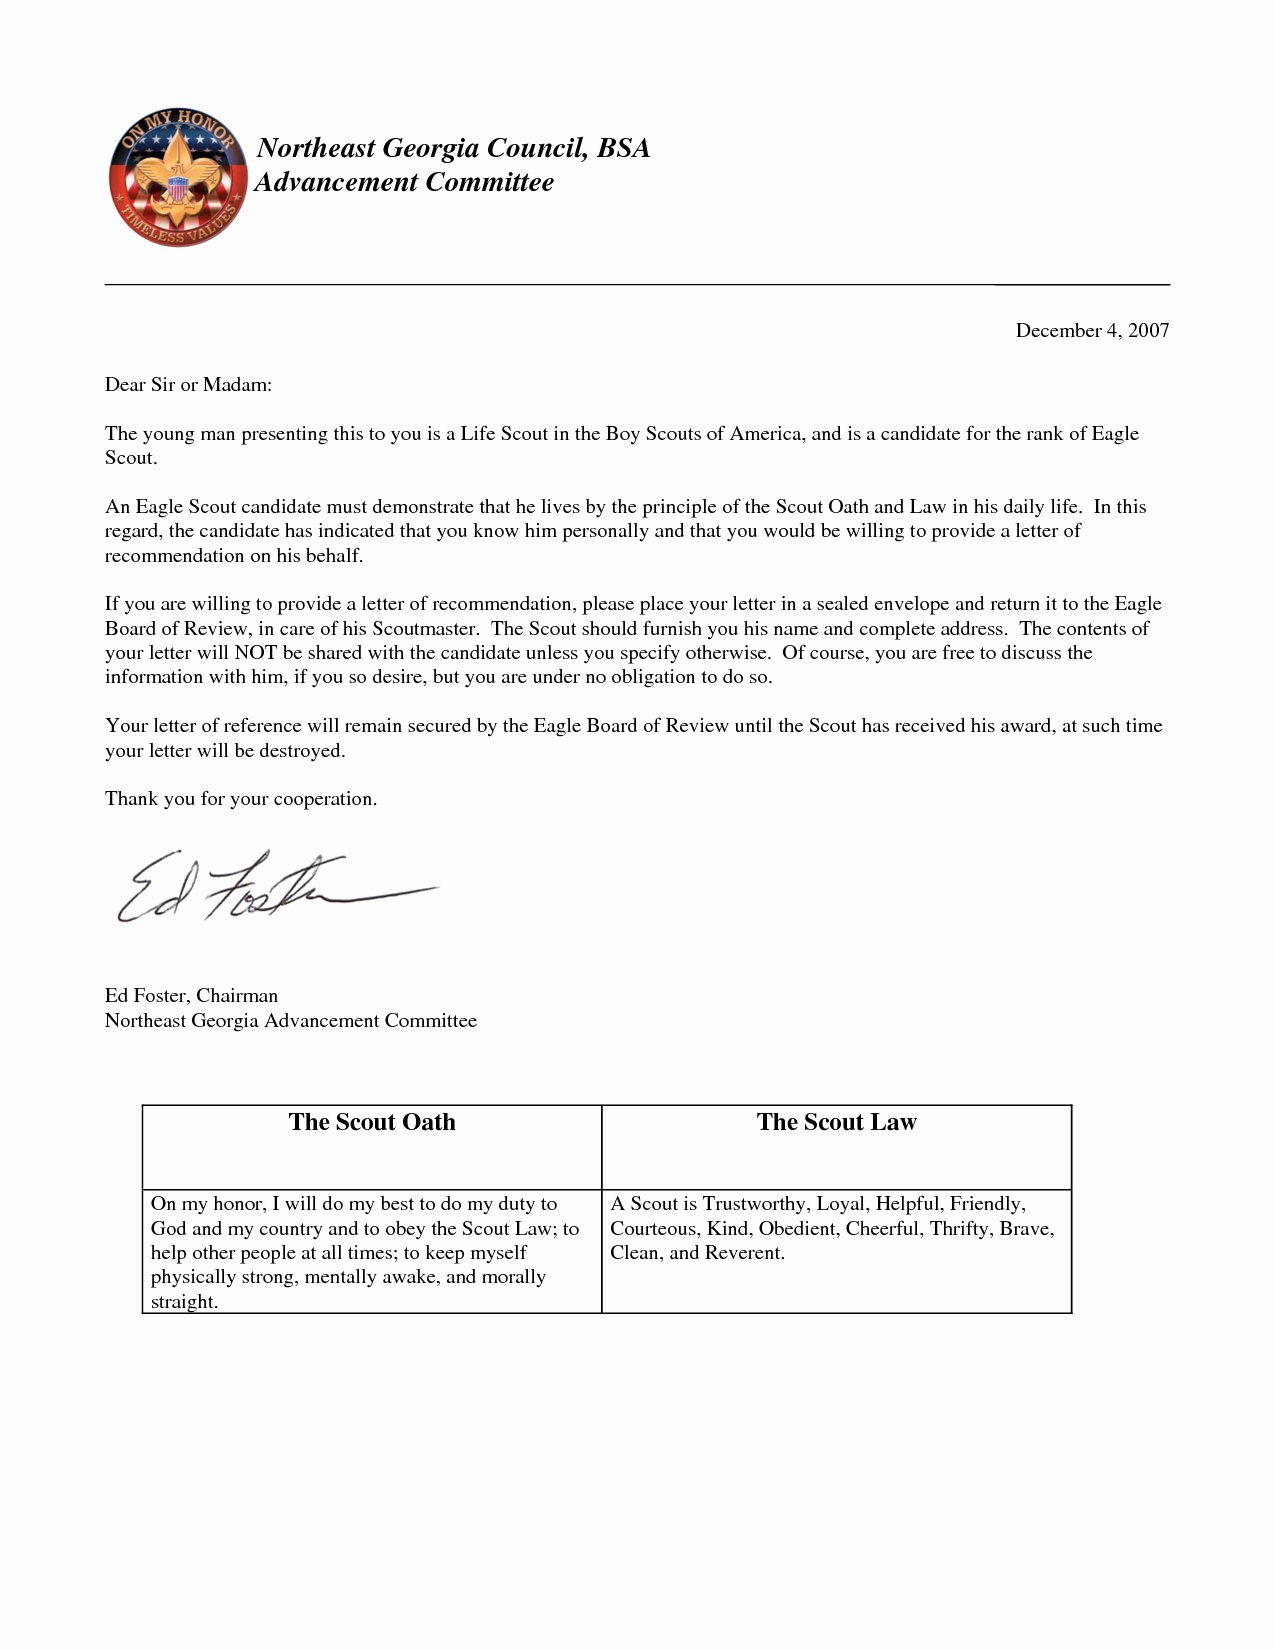 Eagle Scout Reference Letter Template Unique Eagle Scout Re Mendation Letter Template Examples